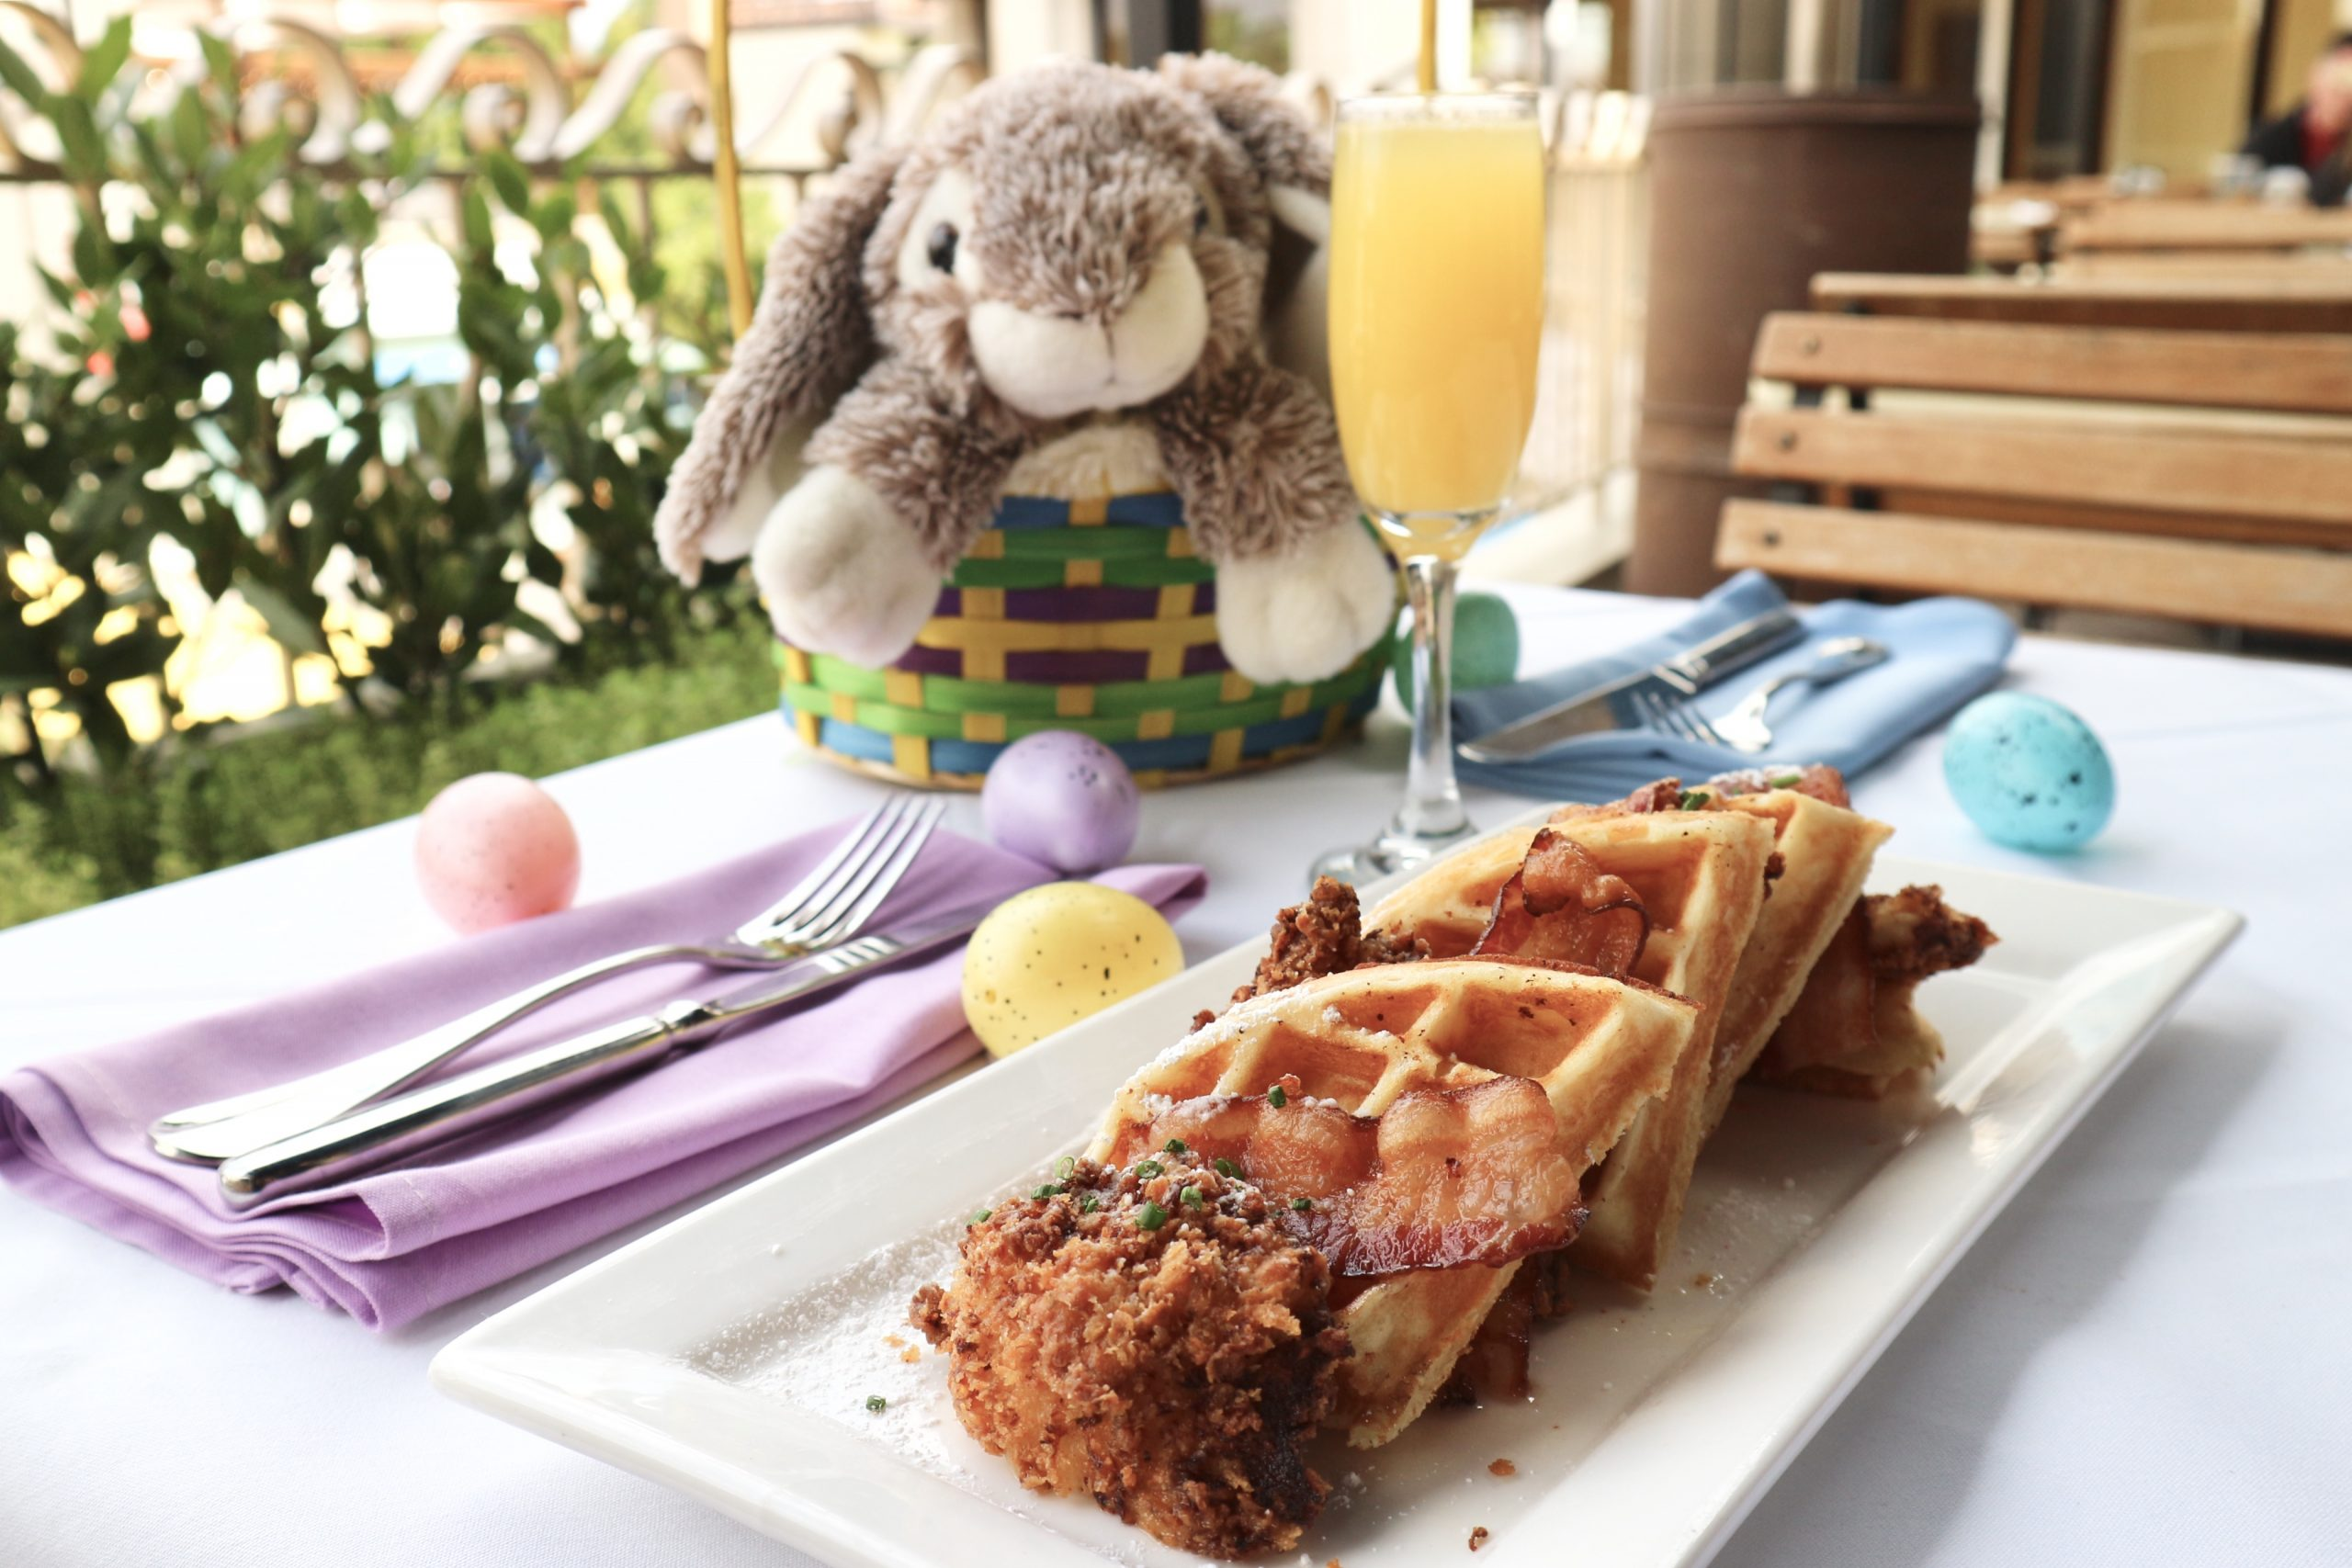 Looking for a great Easter Brunch option? Catal in Downtown Disney has an amazing NEW opportunity to party with the Easter Bunny this year!